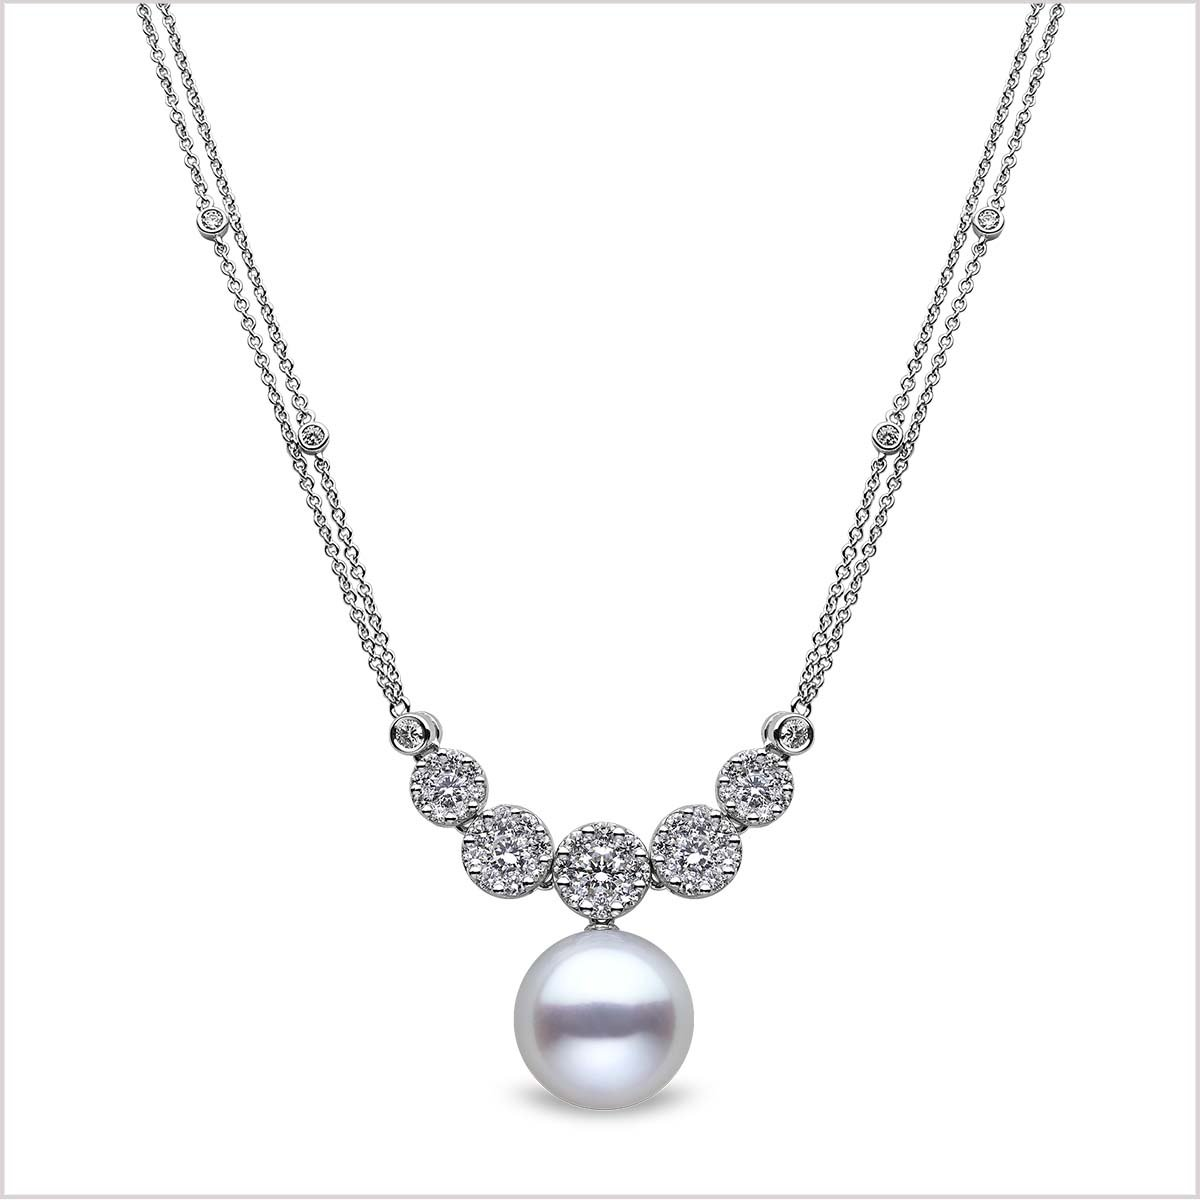 Yoko London Mayfair Diamond and South Sea Pearl Pendant